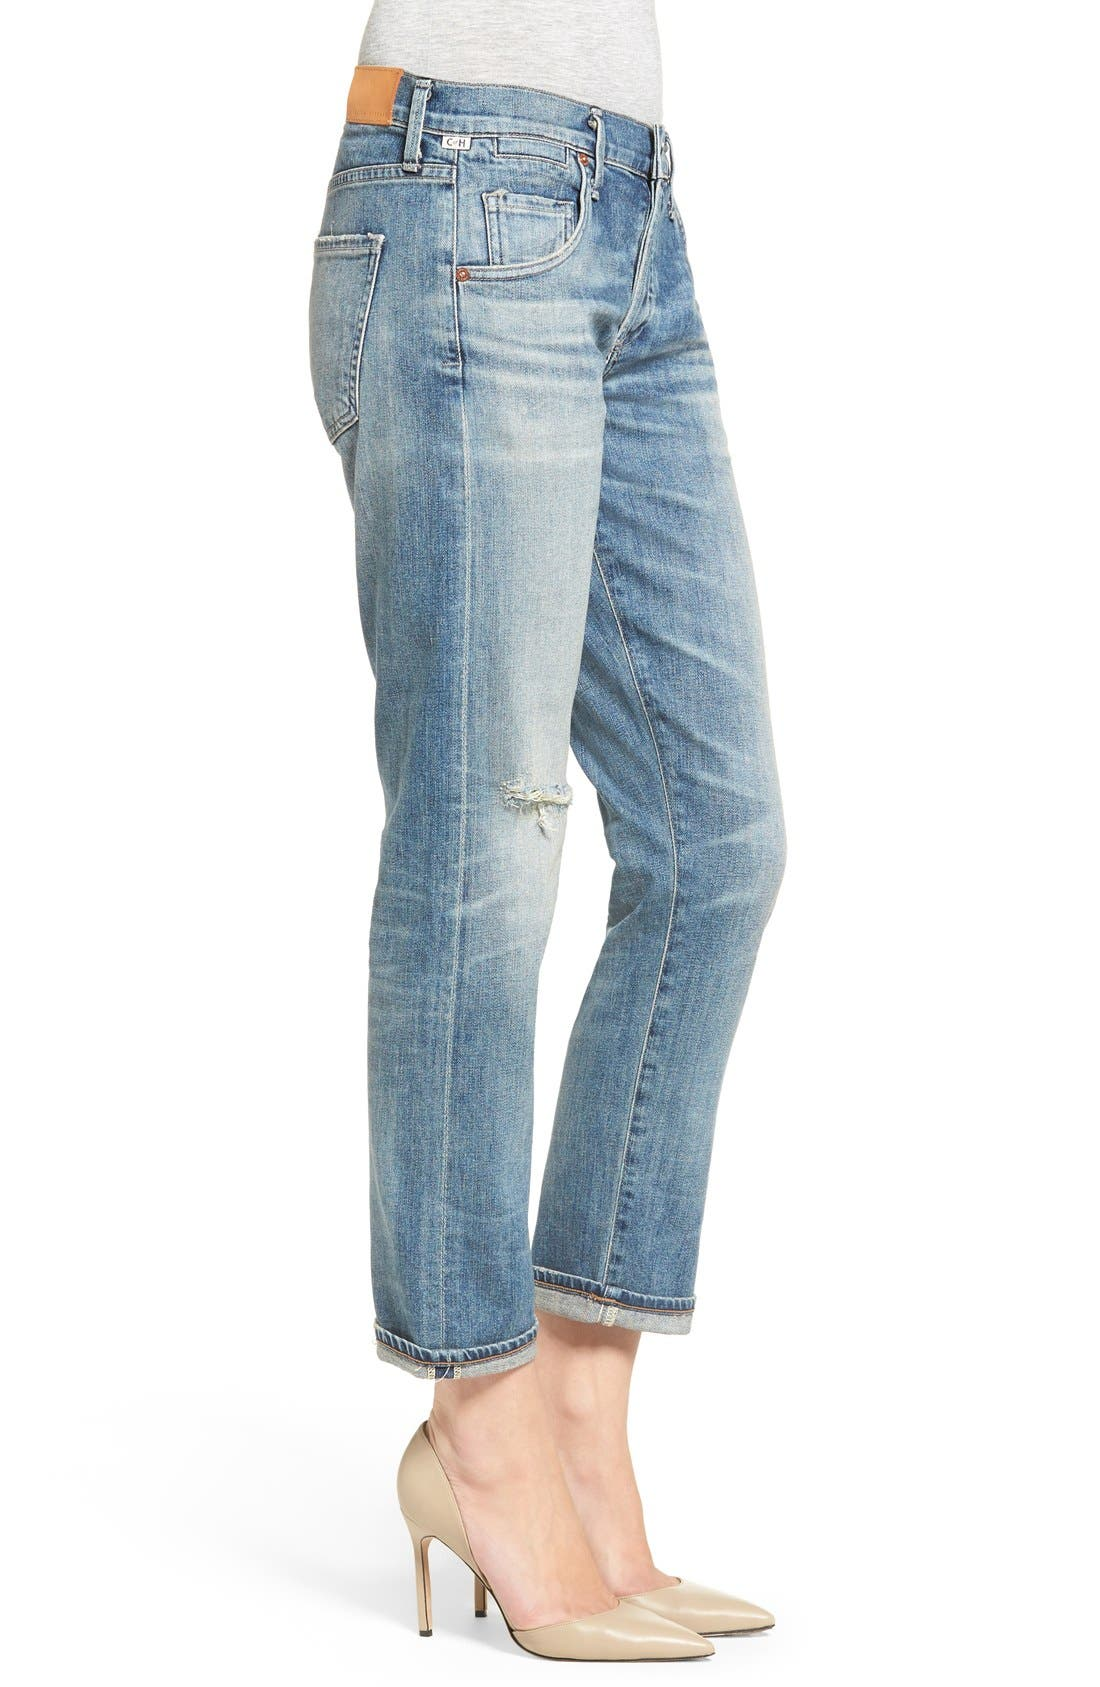 'Emerson' Ripped Slim Boyfriend Jeans,                             Alternate thumbnail 3, color,                             Roseland